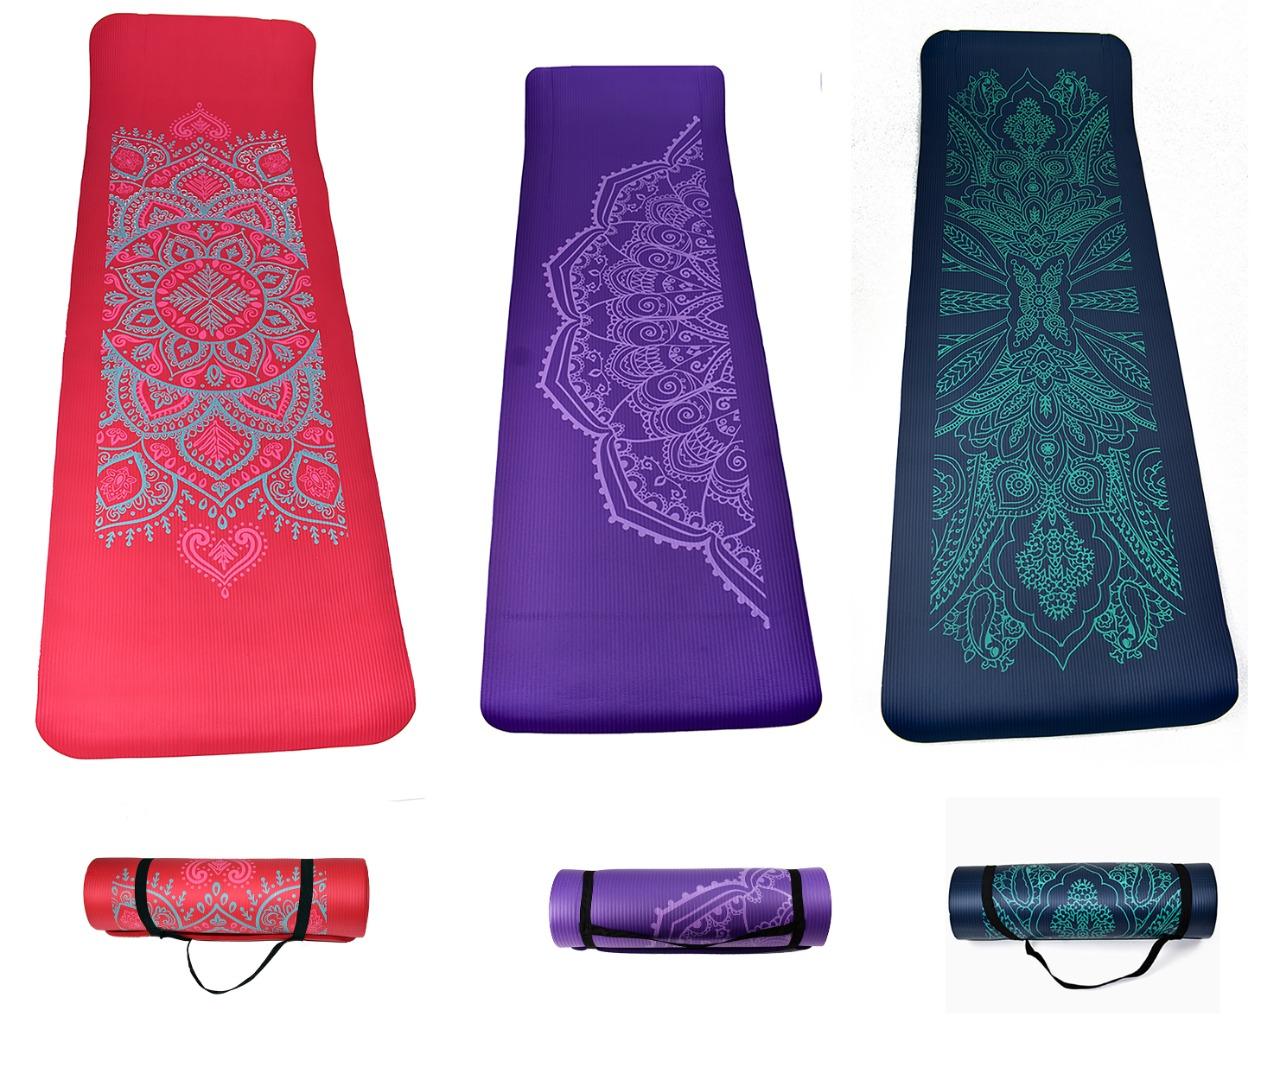 NBR Mandala 12 mm Thick Exercise Fitness Gym Yoga Mat 183cm x 61cm